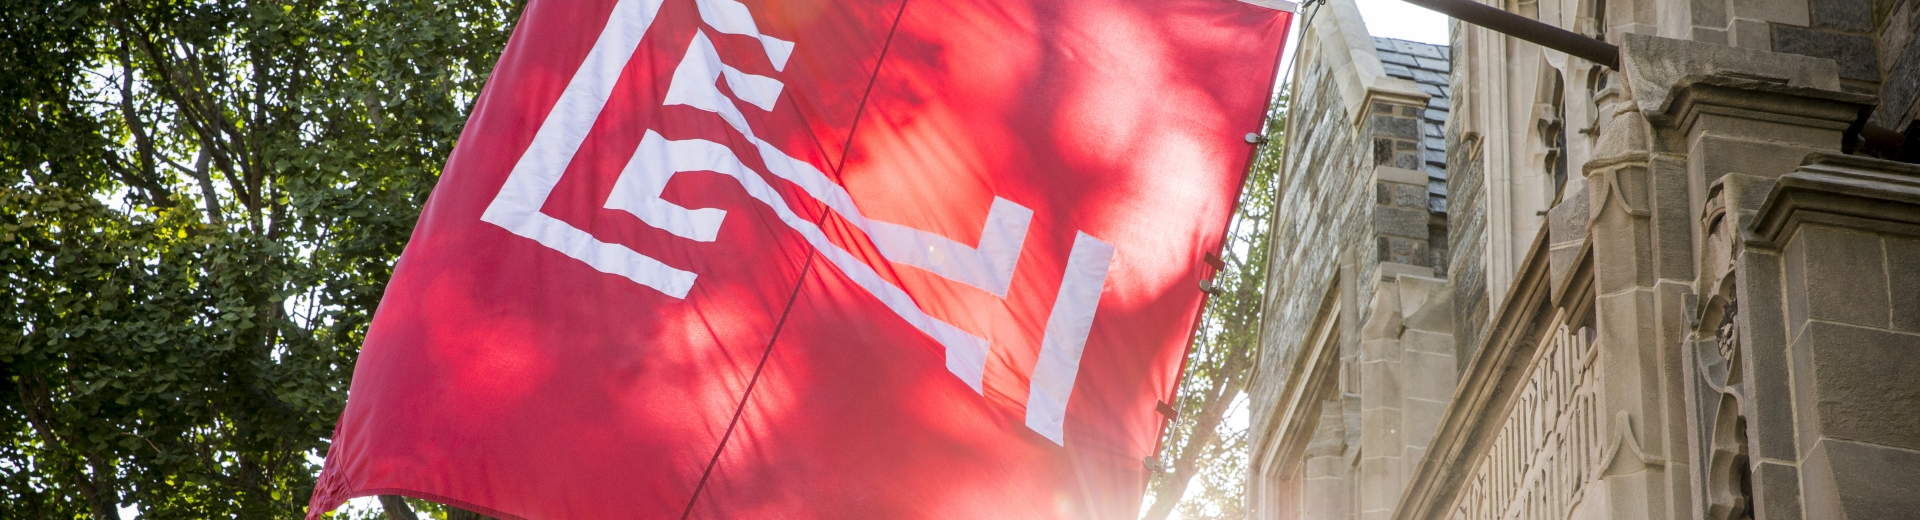 The sun peeks from behind a large red Temple University flag.